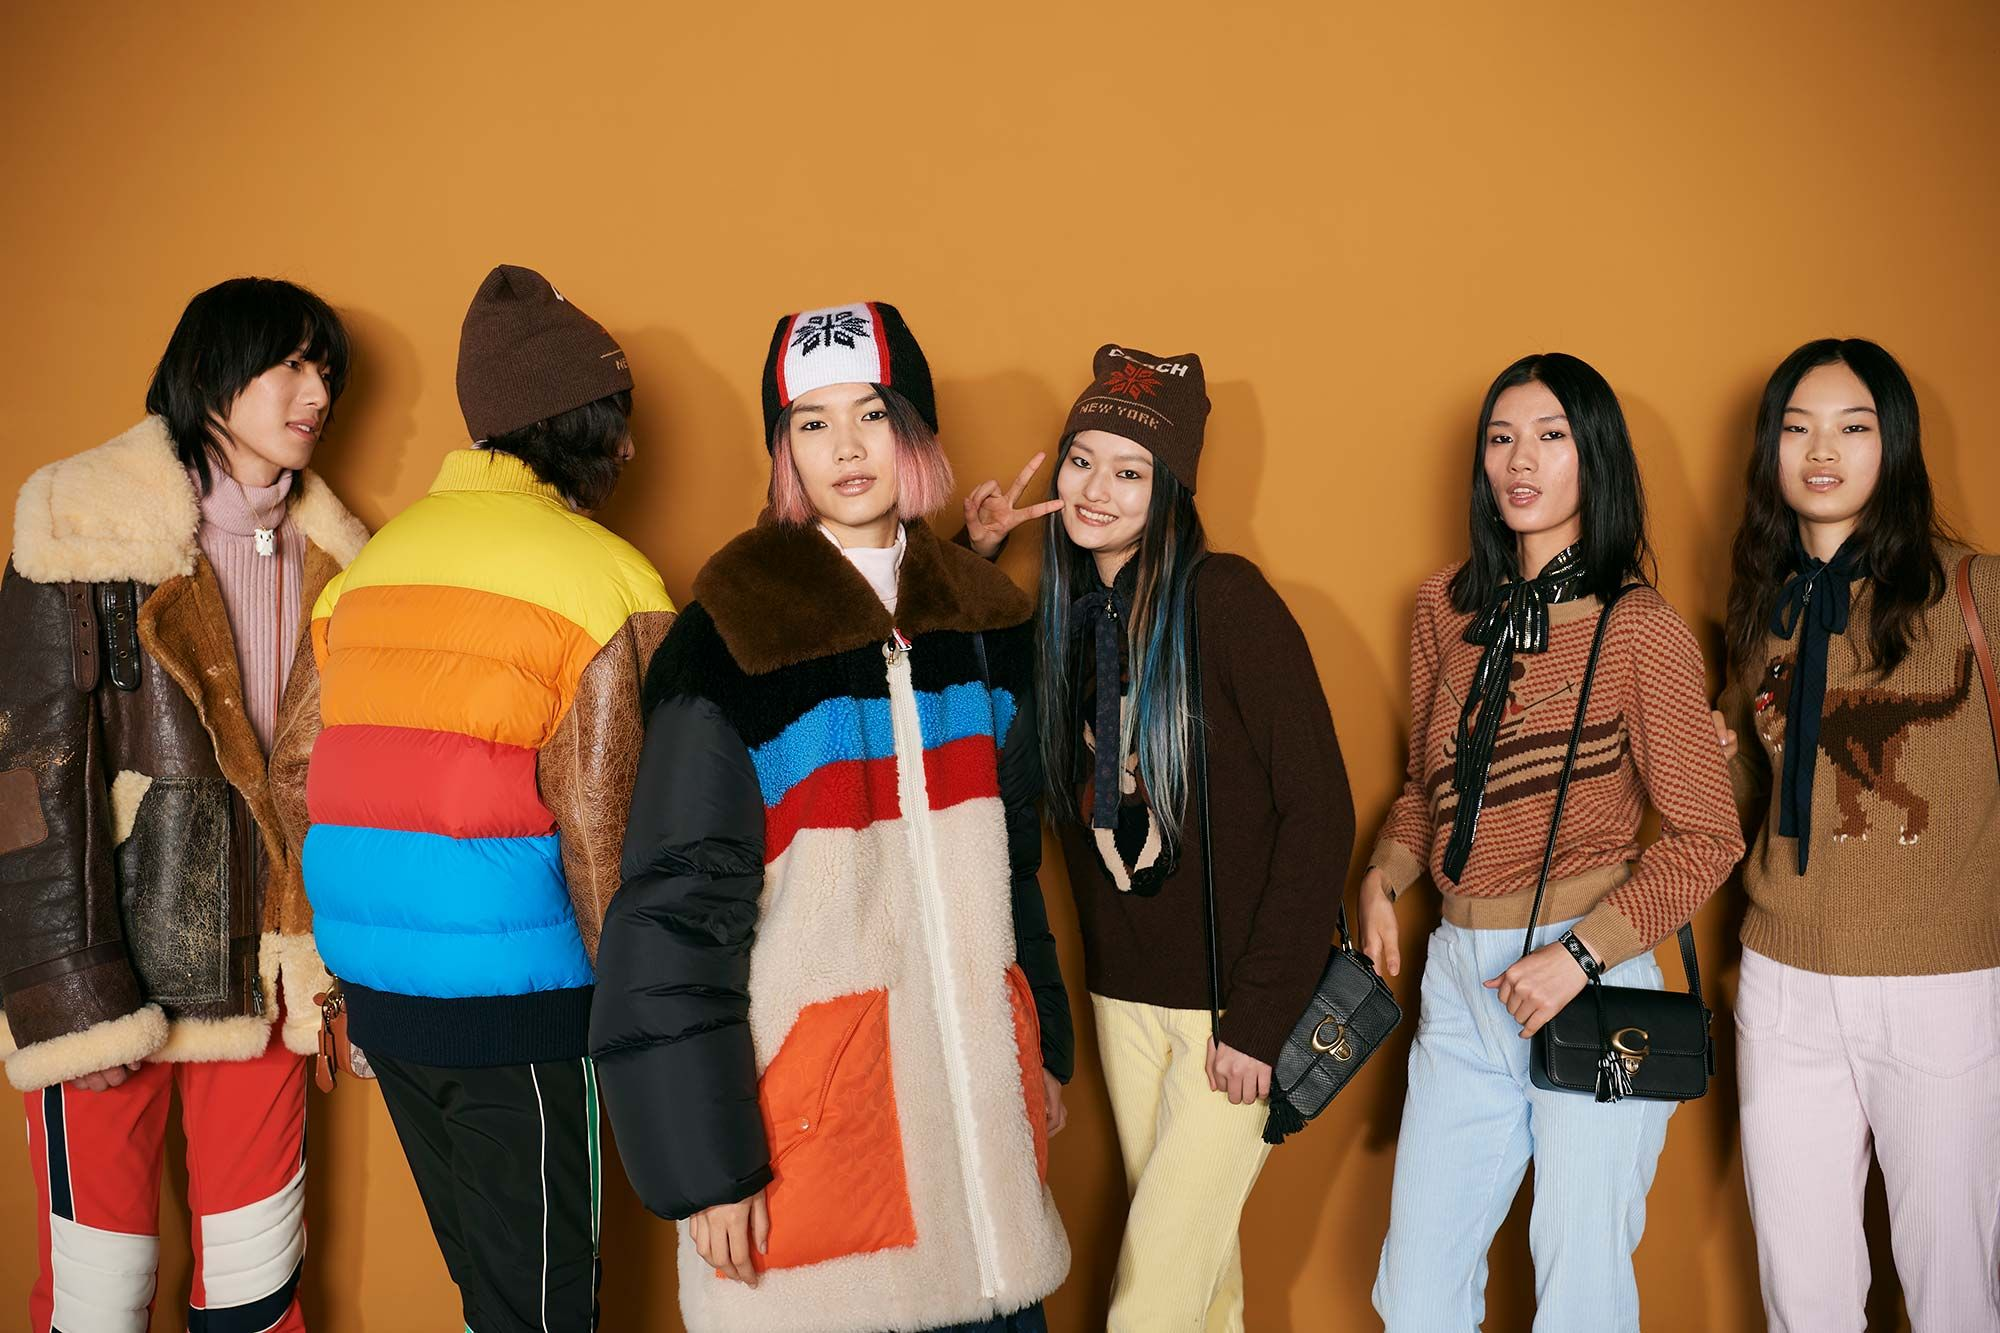 Coach's Gen Z-Inspired Winter Show: 5 Things We Loved From The Collection